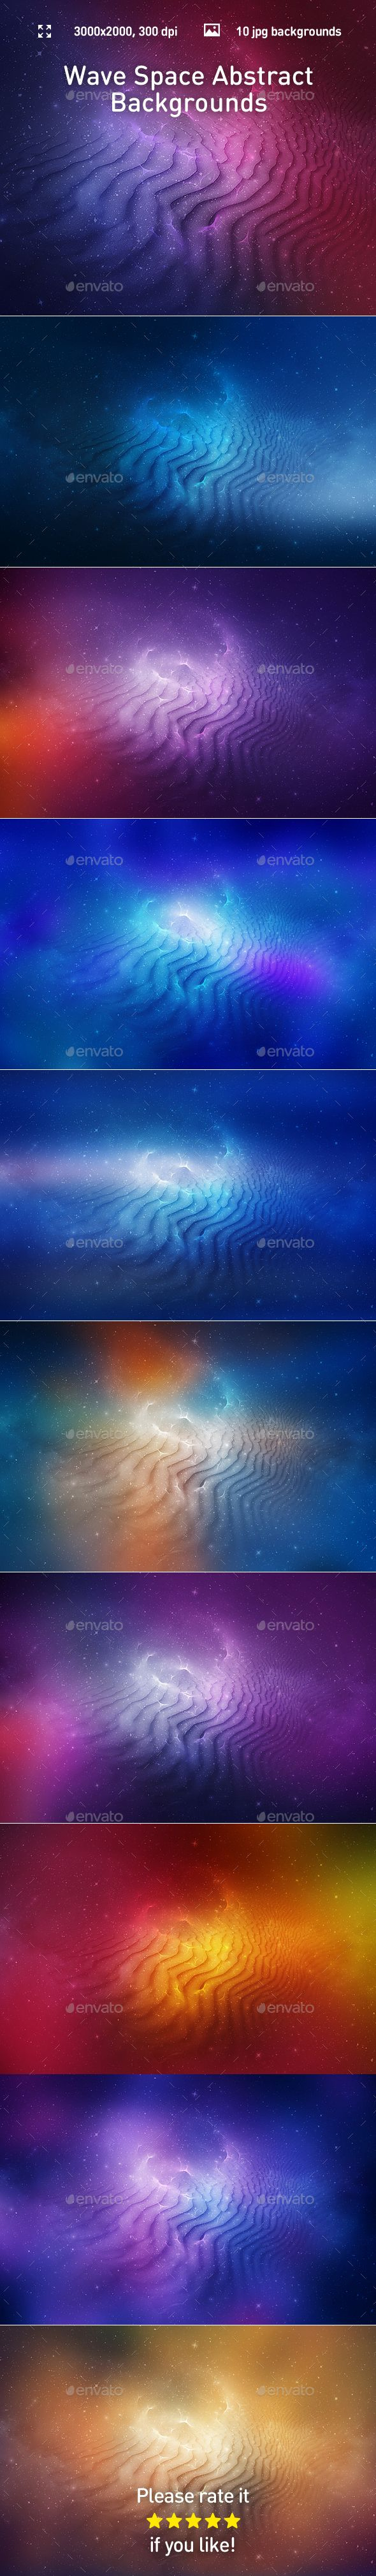 Space Abstract Backgrounds - Abstract #Backgrounds Download here: https://graphicriver.net/item/space-abstract-backgrounds/17406720?ref=alena994